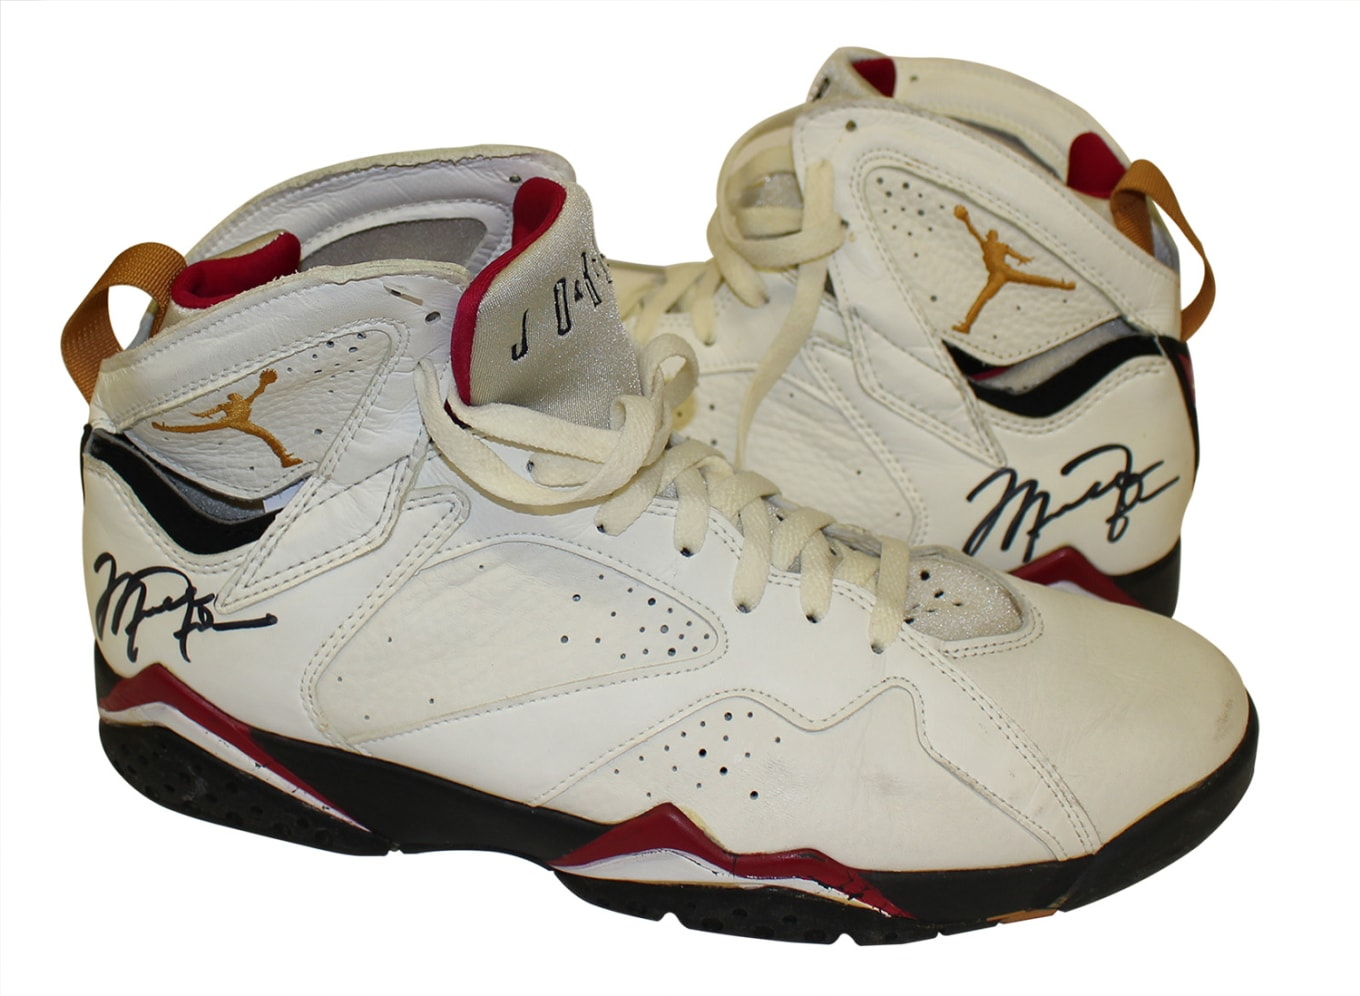 65d2de2d944 Michael Jordan's Game-Worn Air Jordans from 1992 Up for Auction. Former  Gatorade VP parts with dual-signed sneakers.